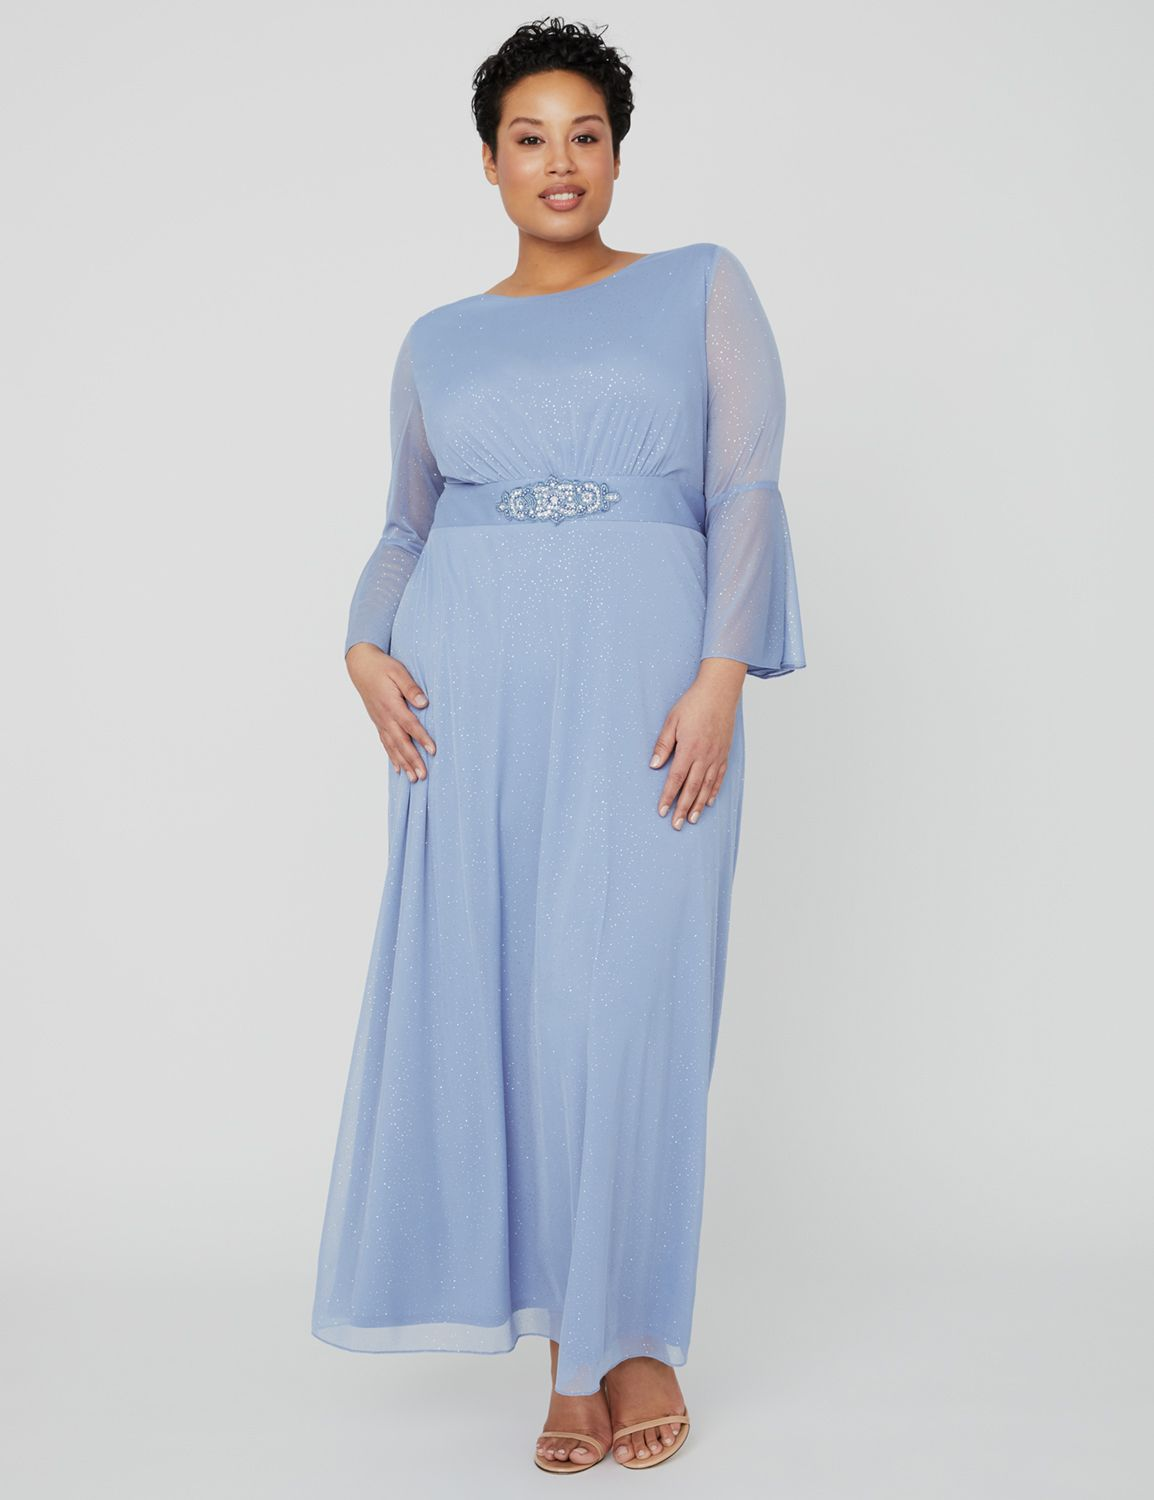 Twilight Sky Gown 1090991 Empire Waist Dress with Wai MP-300099830